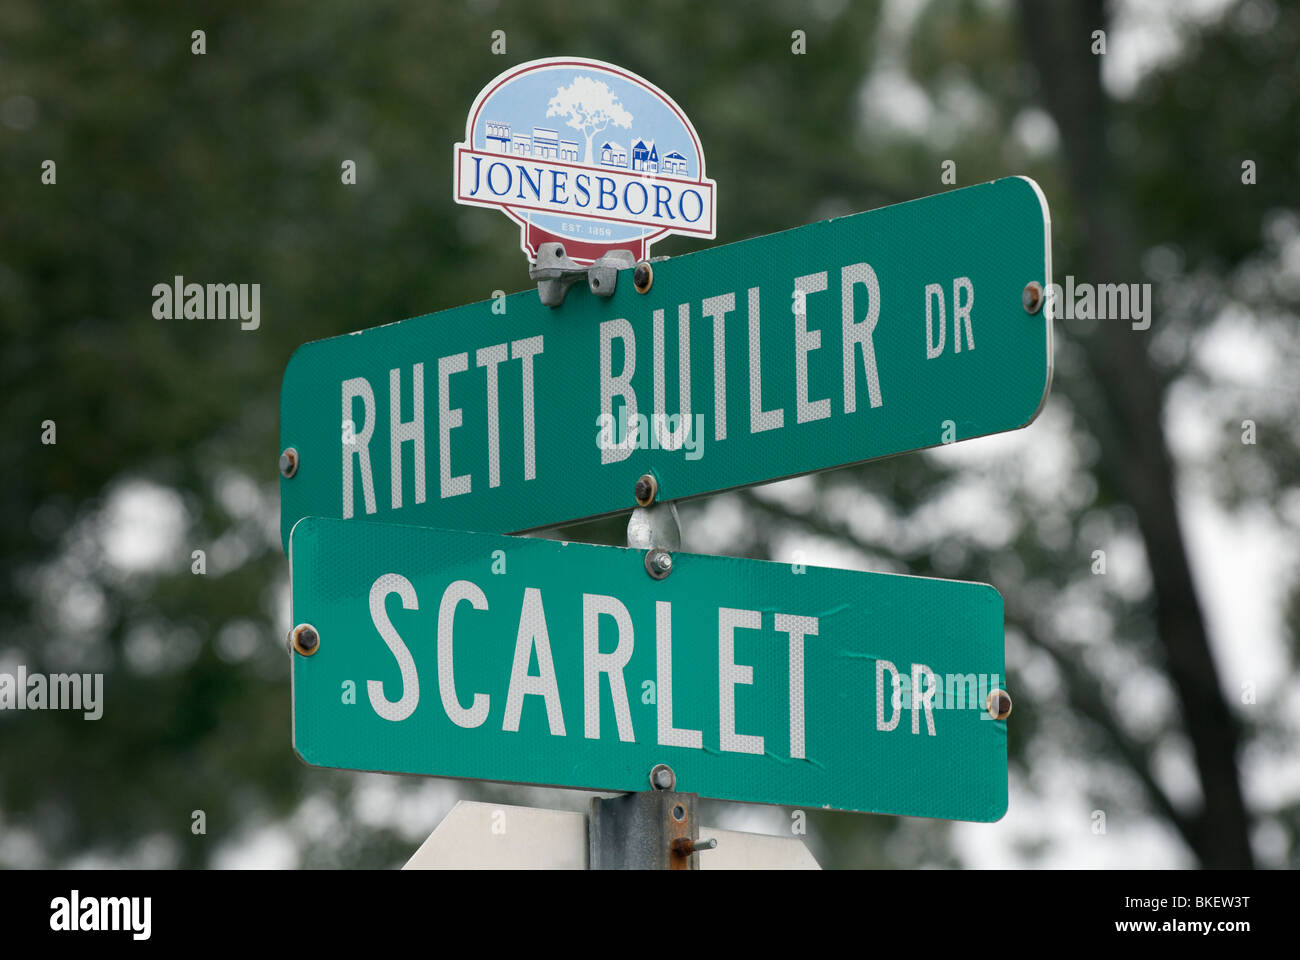 Street signs displaying the names of the main characters of 'Gone with the Wind.'  Jonesboro, Georgia, USA - Stock Image